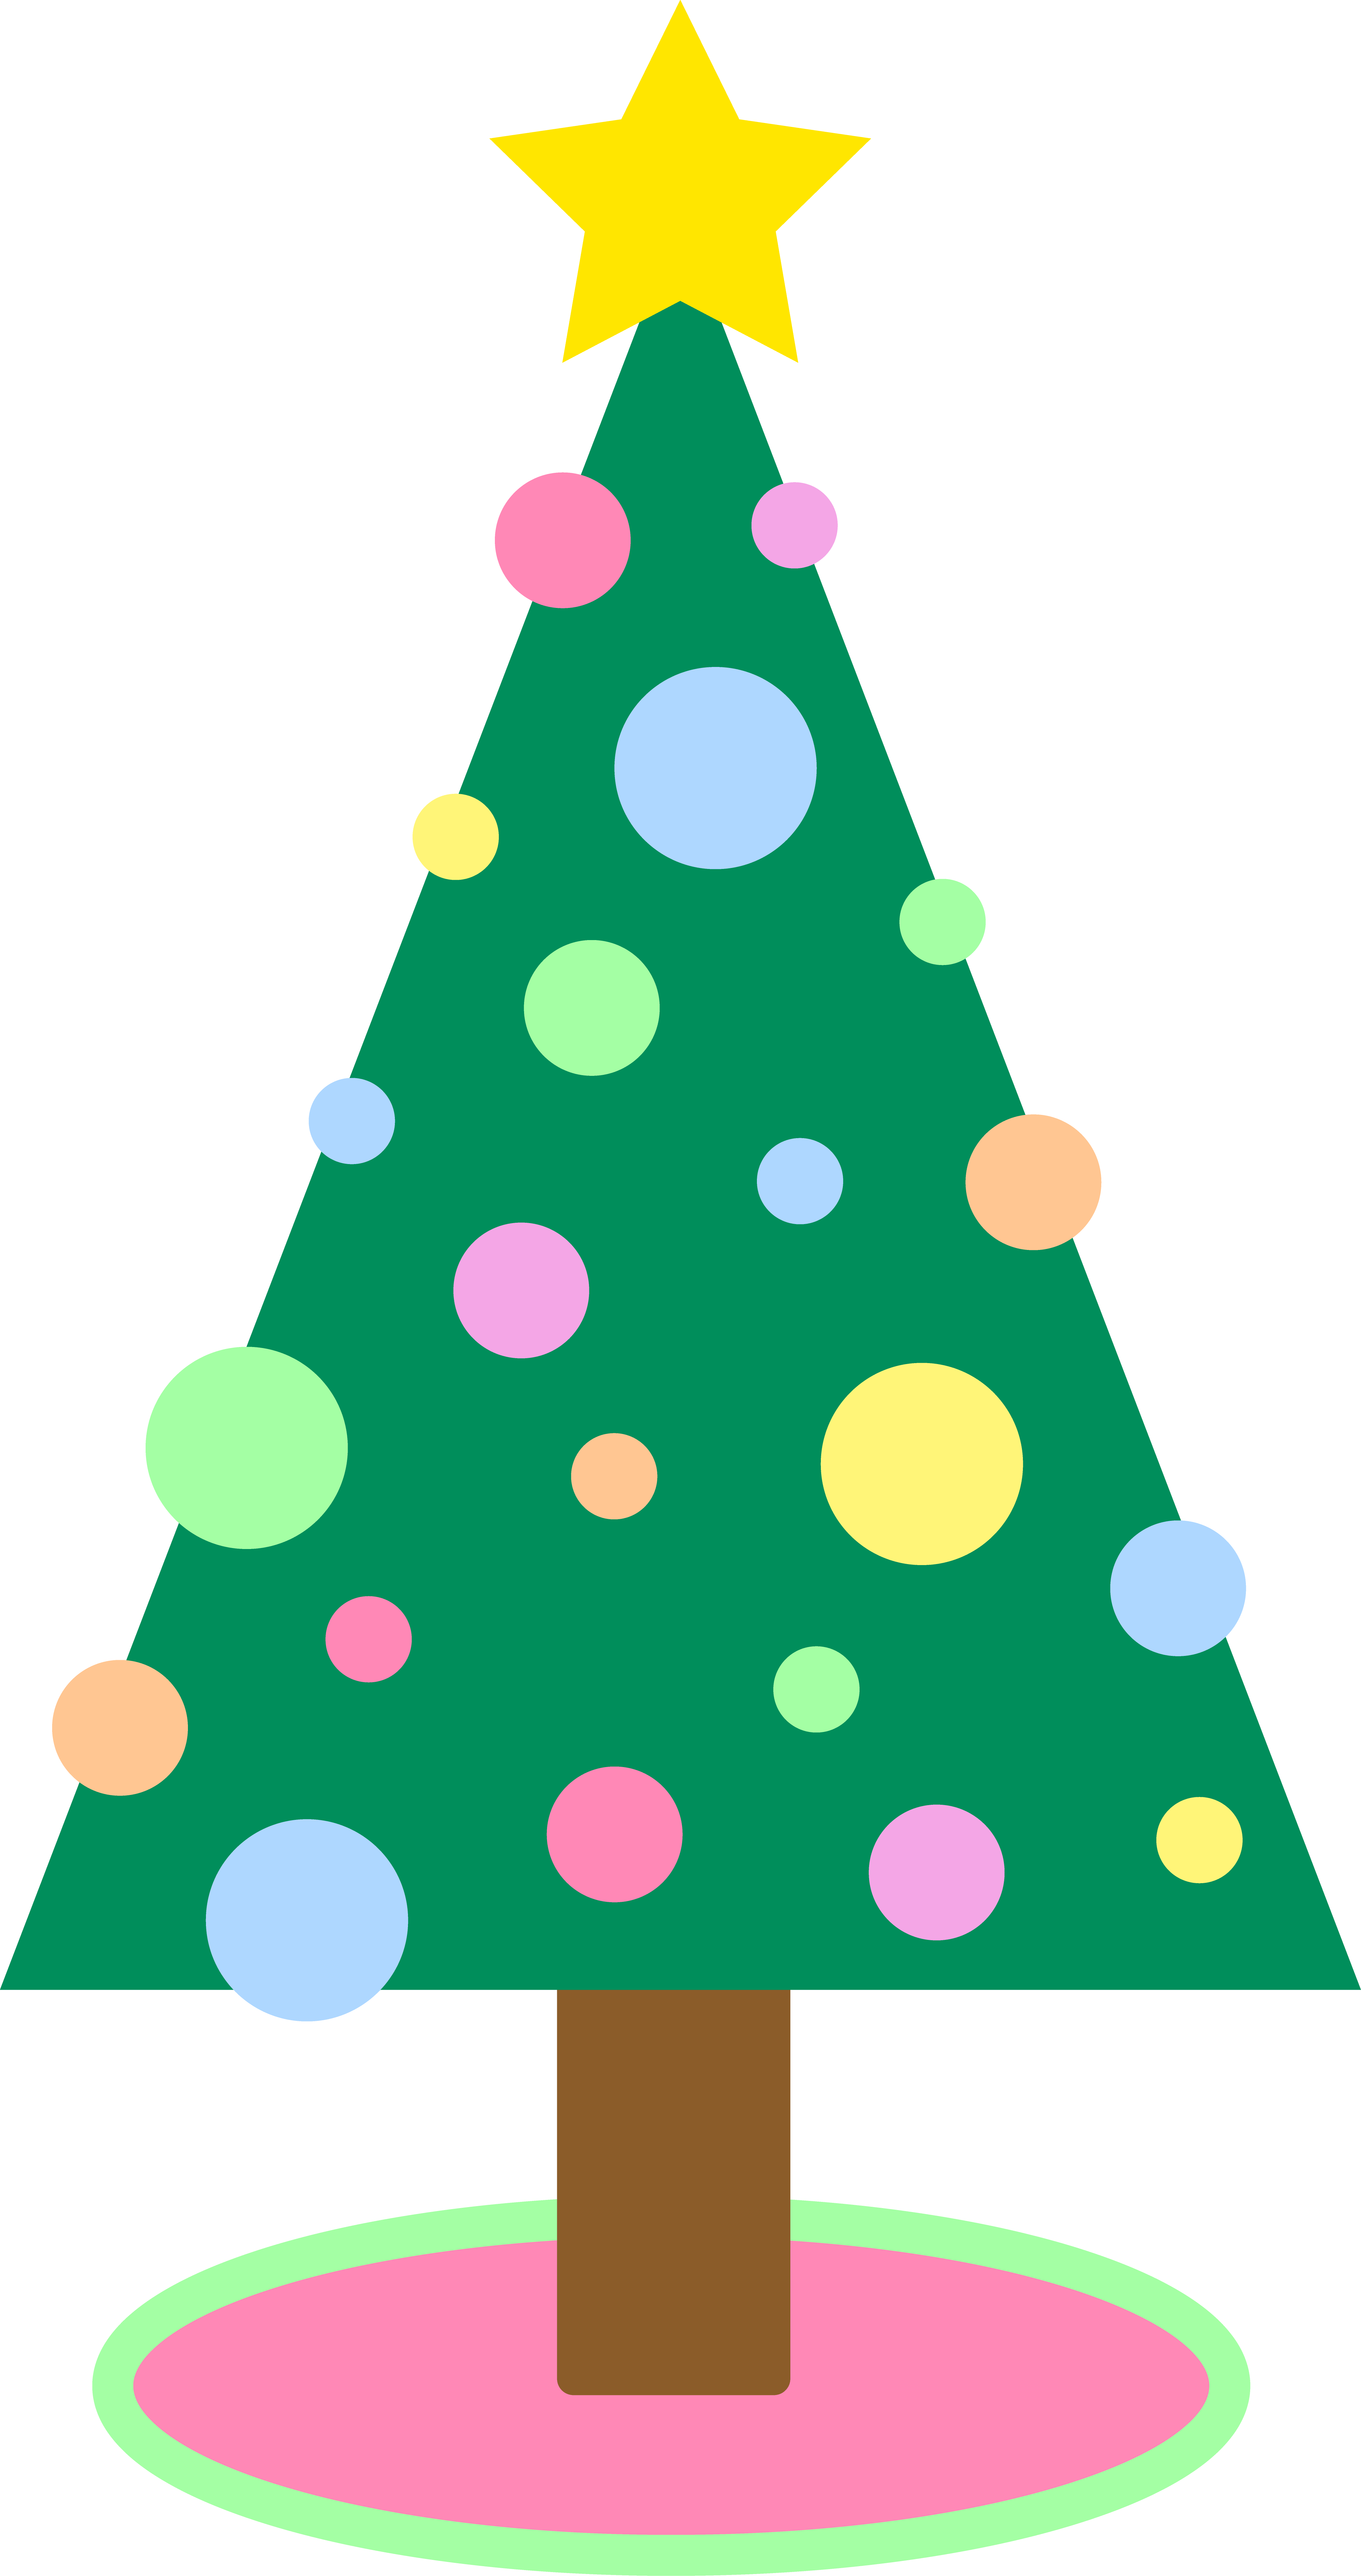 Simple Christmas Tree Clipart | Clipart Panda - Free Clipart Images